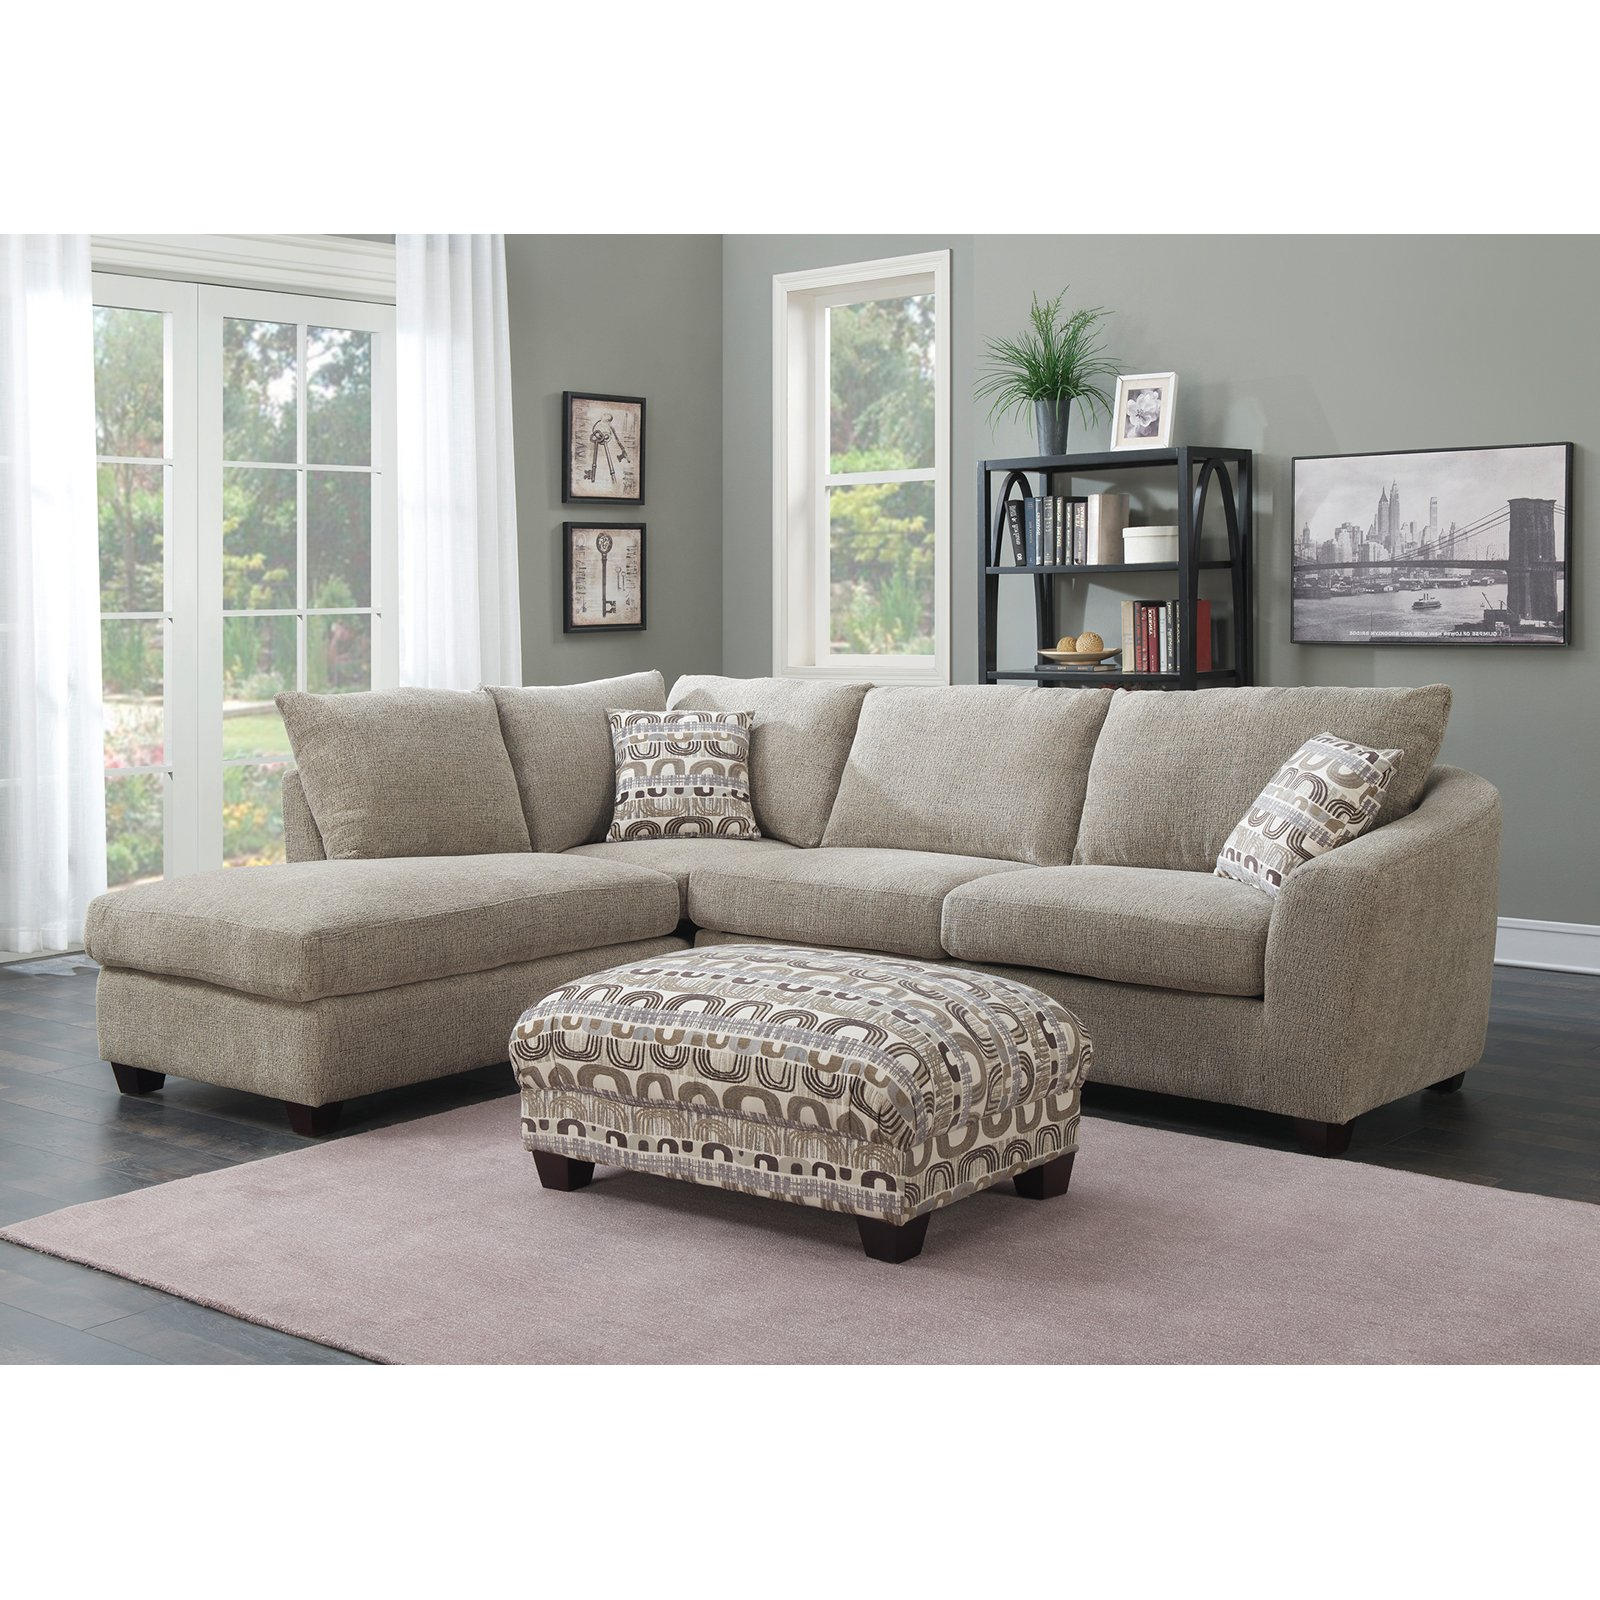 2 Piece Sectional With Chaise – Tidex With Current Avery 2 Piece Sectionals With Laf Armless Chaise (View 2 of 20)